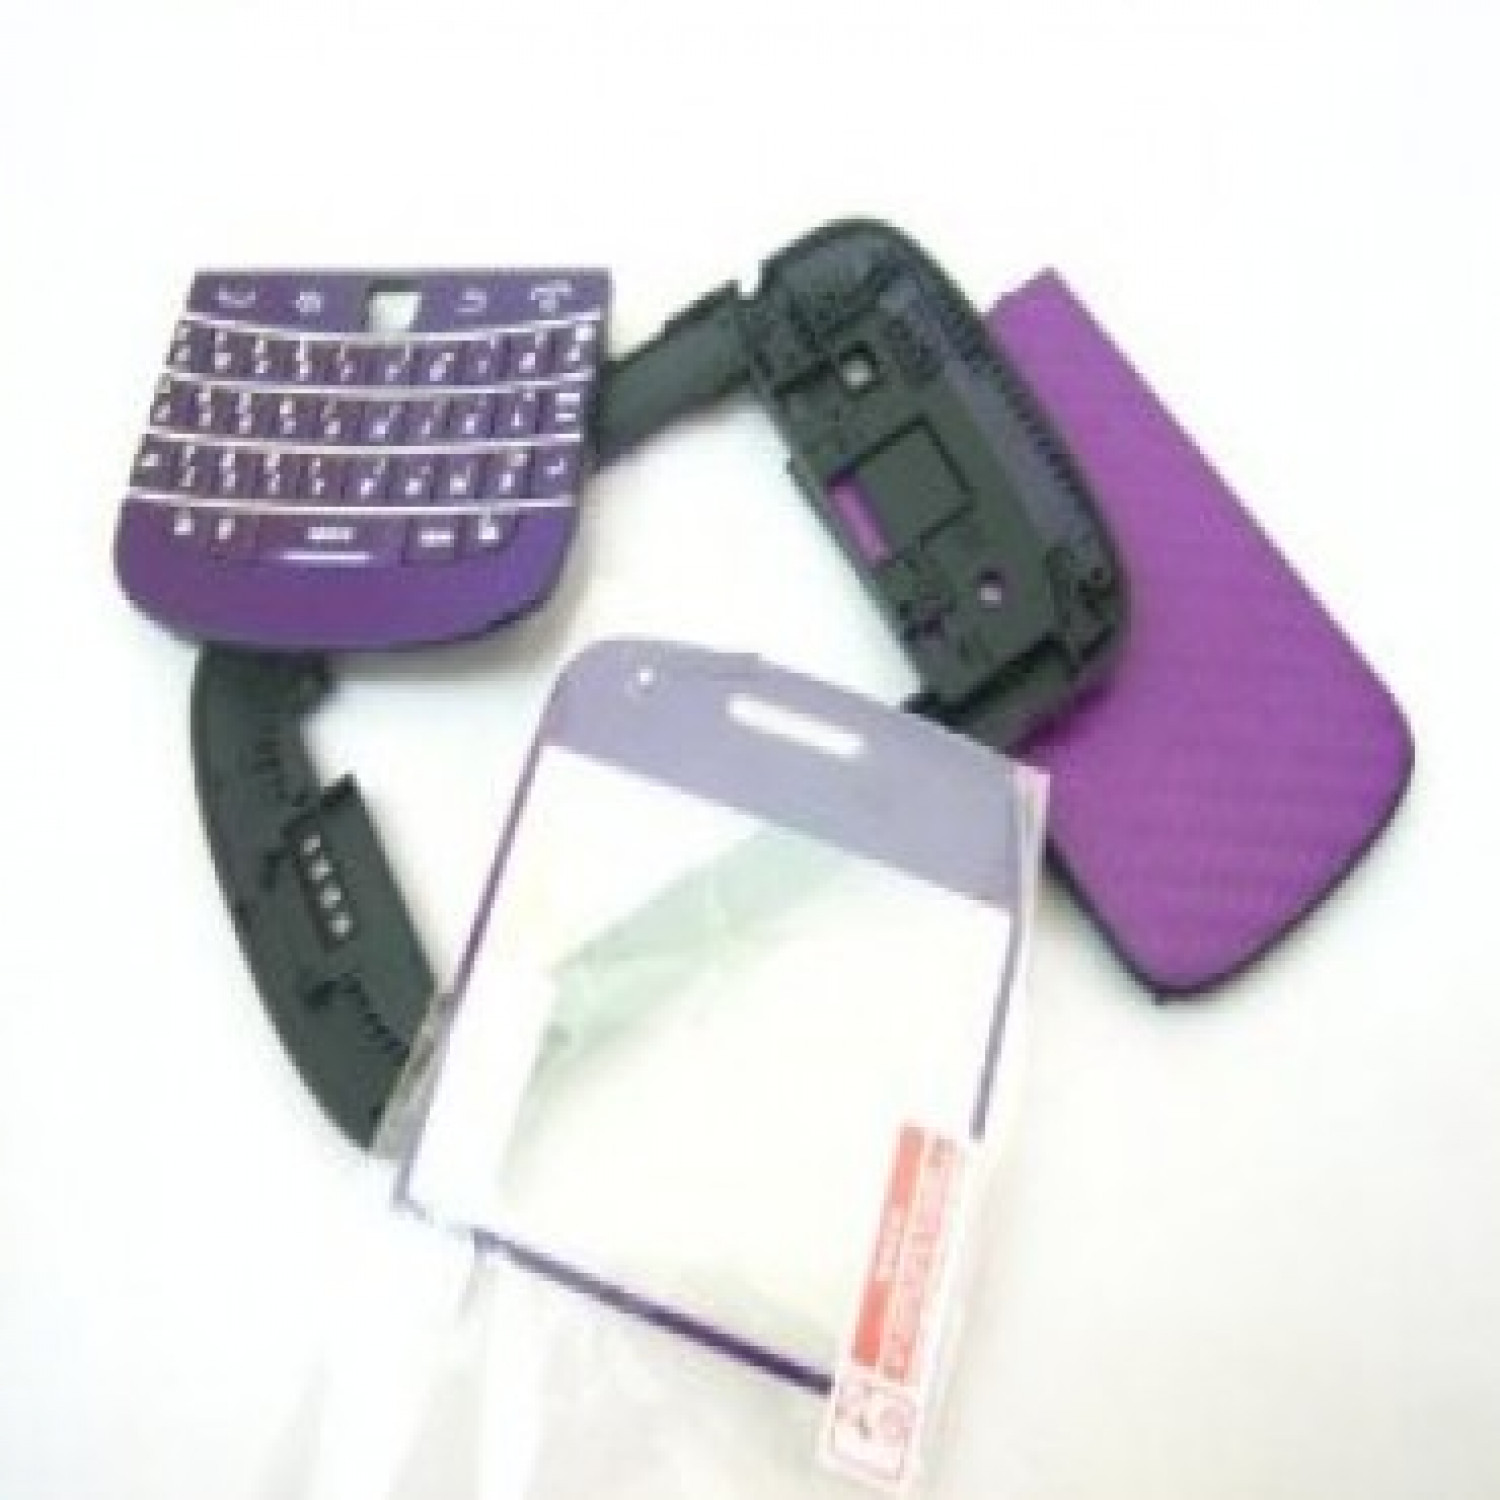 Blackberry Bold 9900 Replacement Housing Frame Cover  Infographic